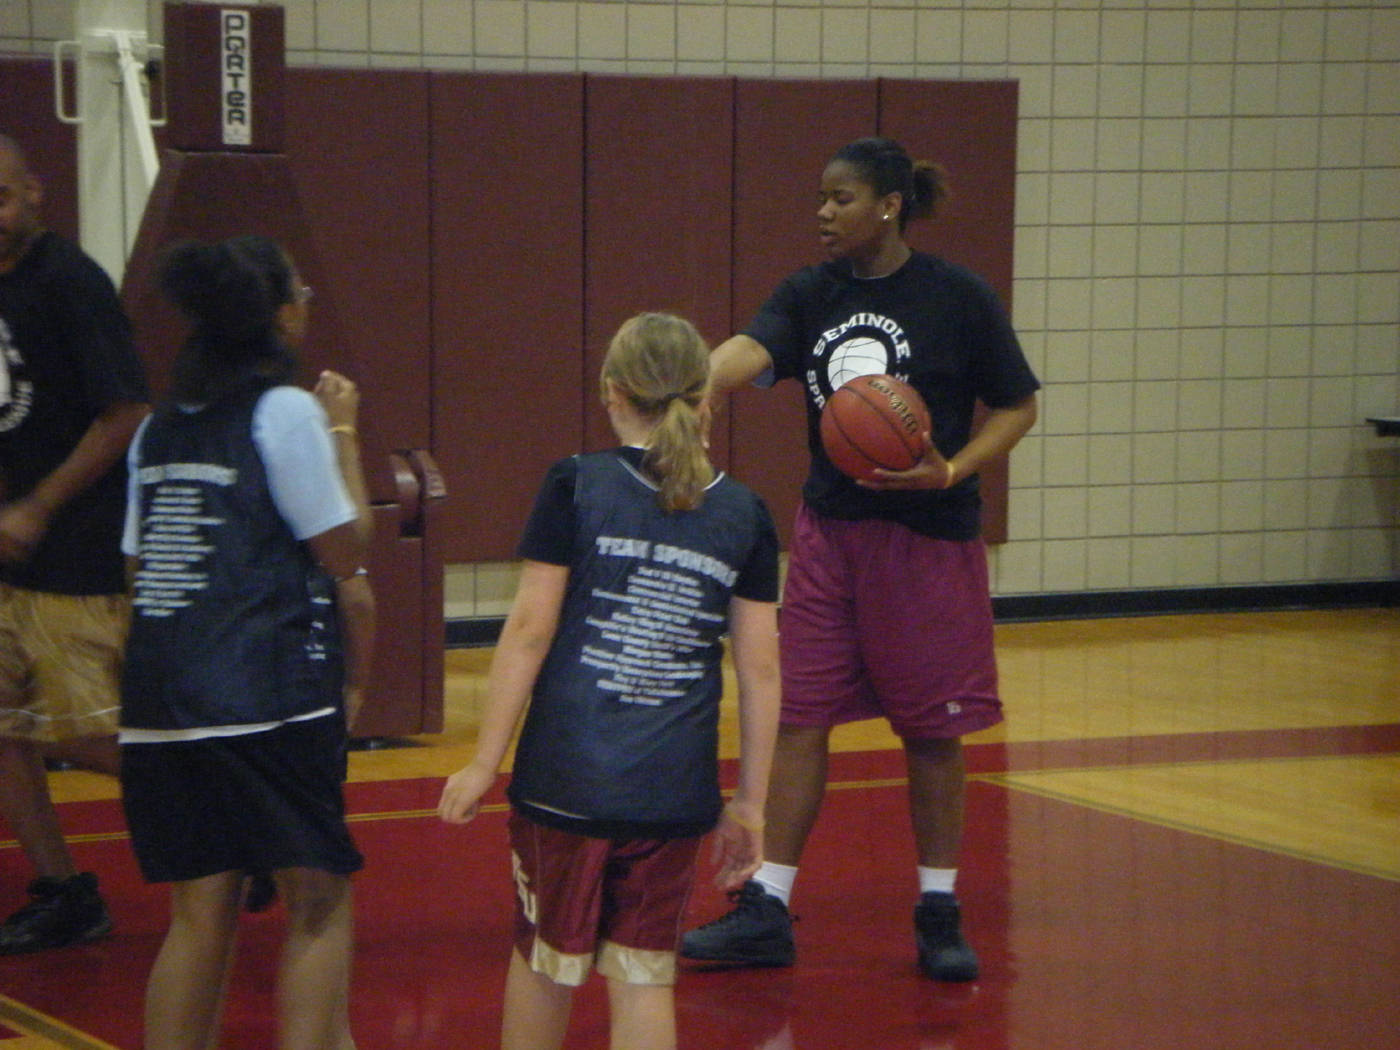 Freshman Antionette Howard teaches the girls how to correctly pass a ball.